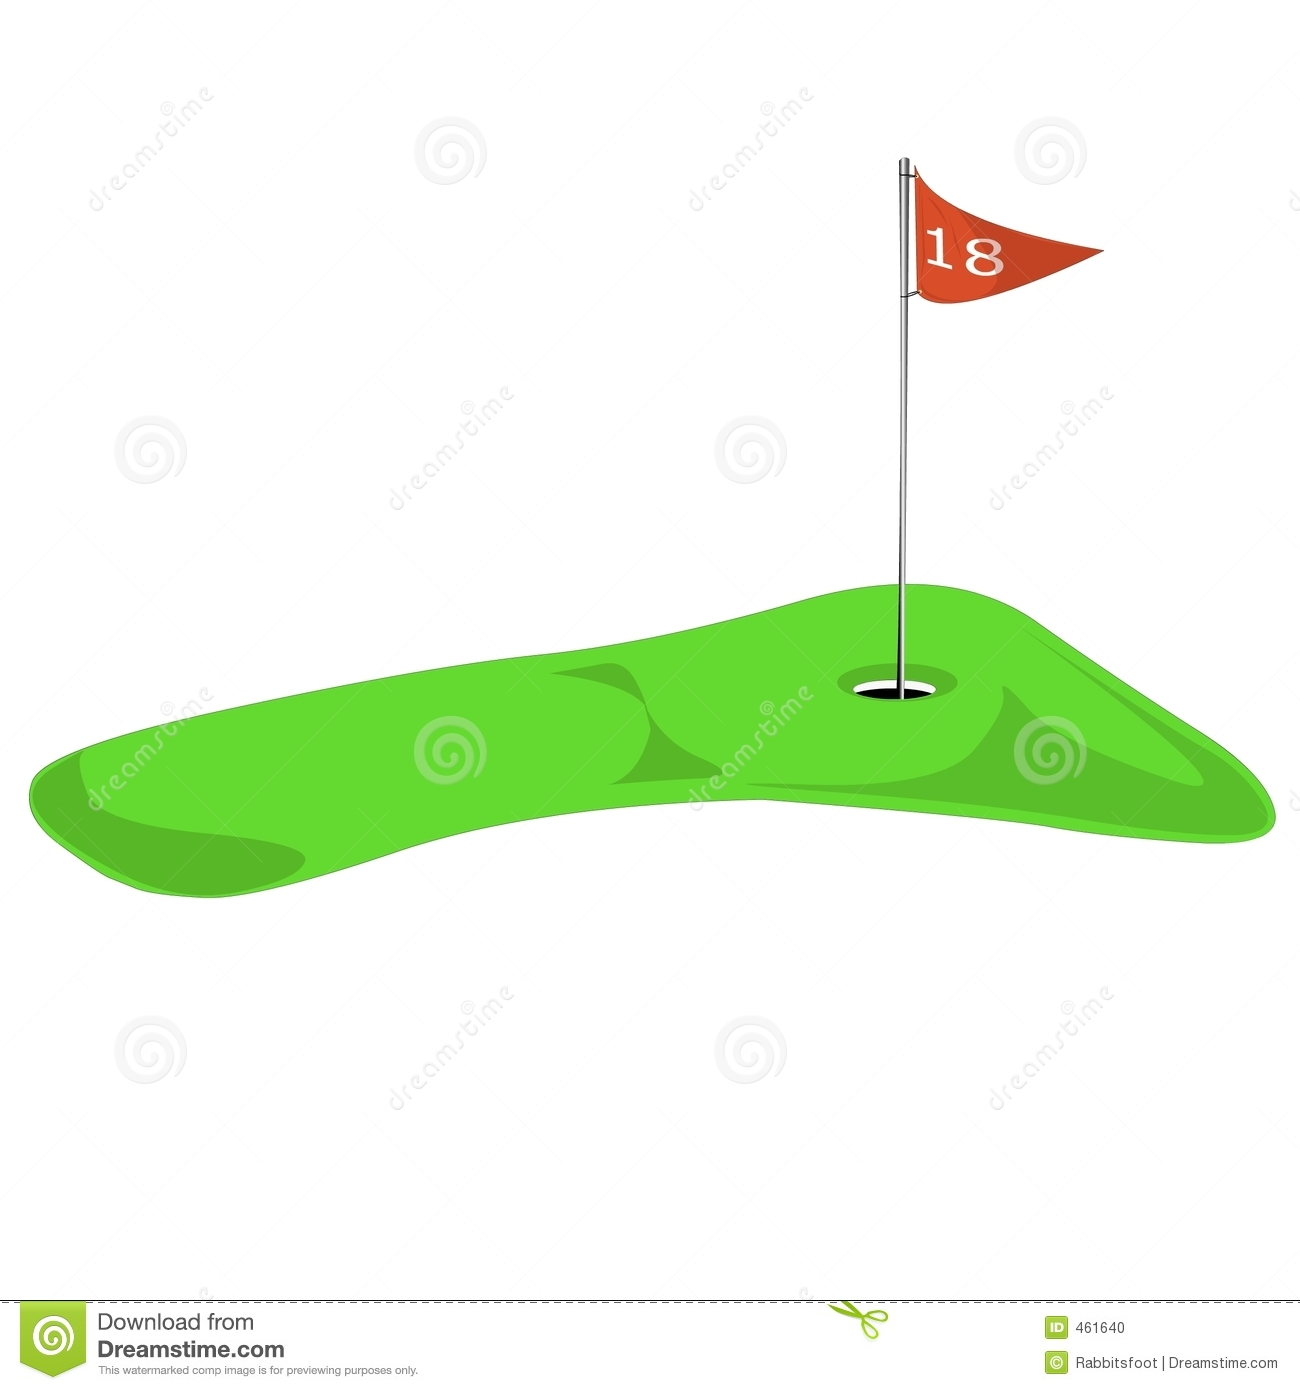 Golf flagstick free download. Hole clipart 18th